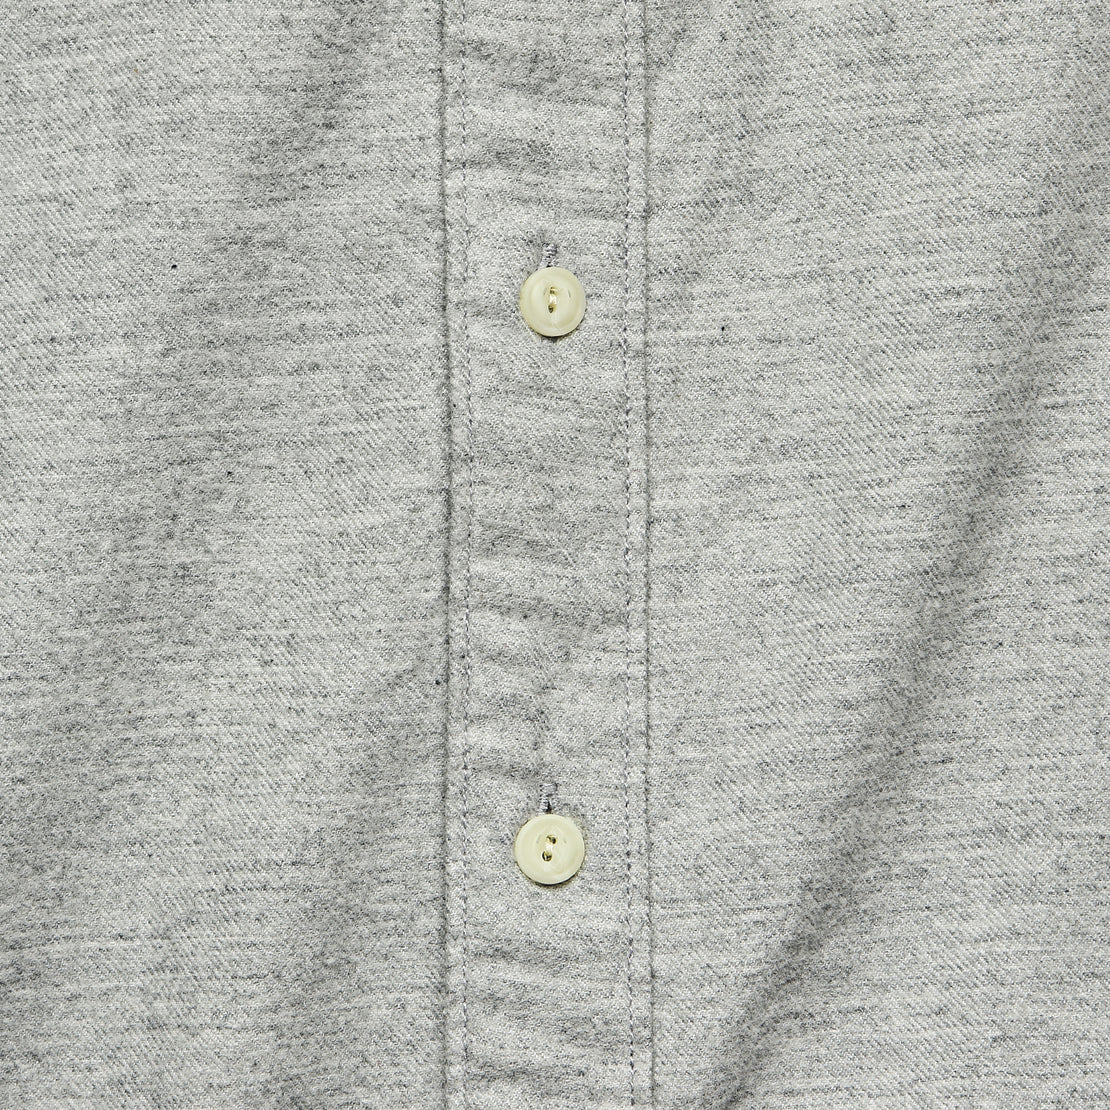 Blackmer Heather Shirt - Grey Marl